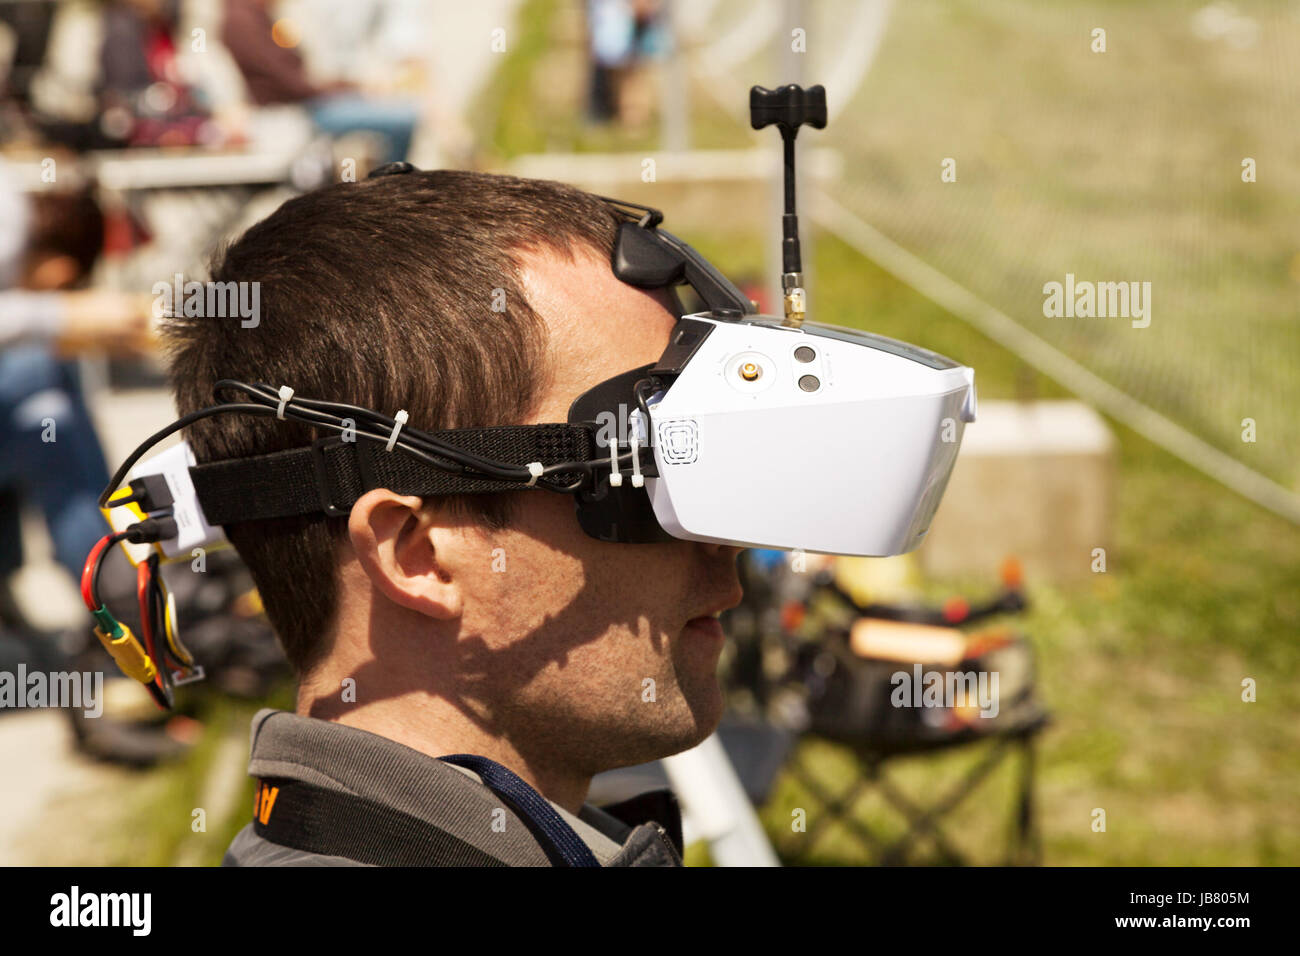 Drone pilot wearing first-person view headset. Young man driving a quadcopter using video-goggles - Stock Image